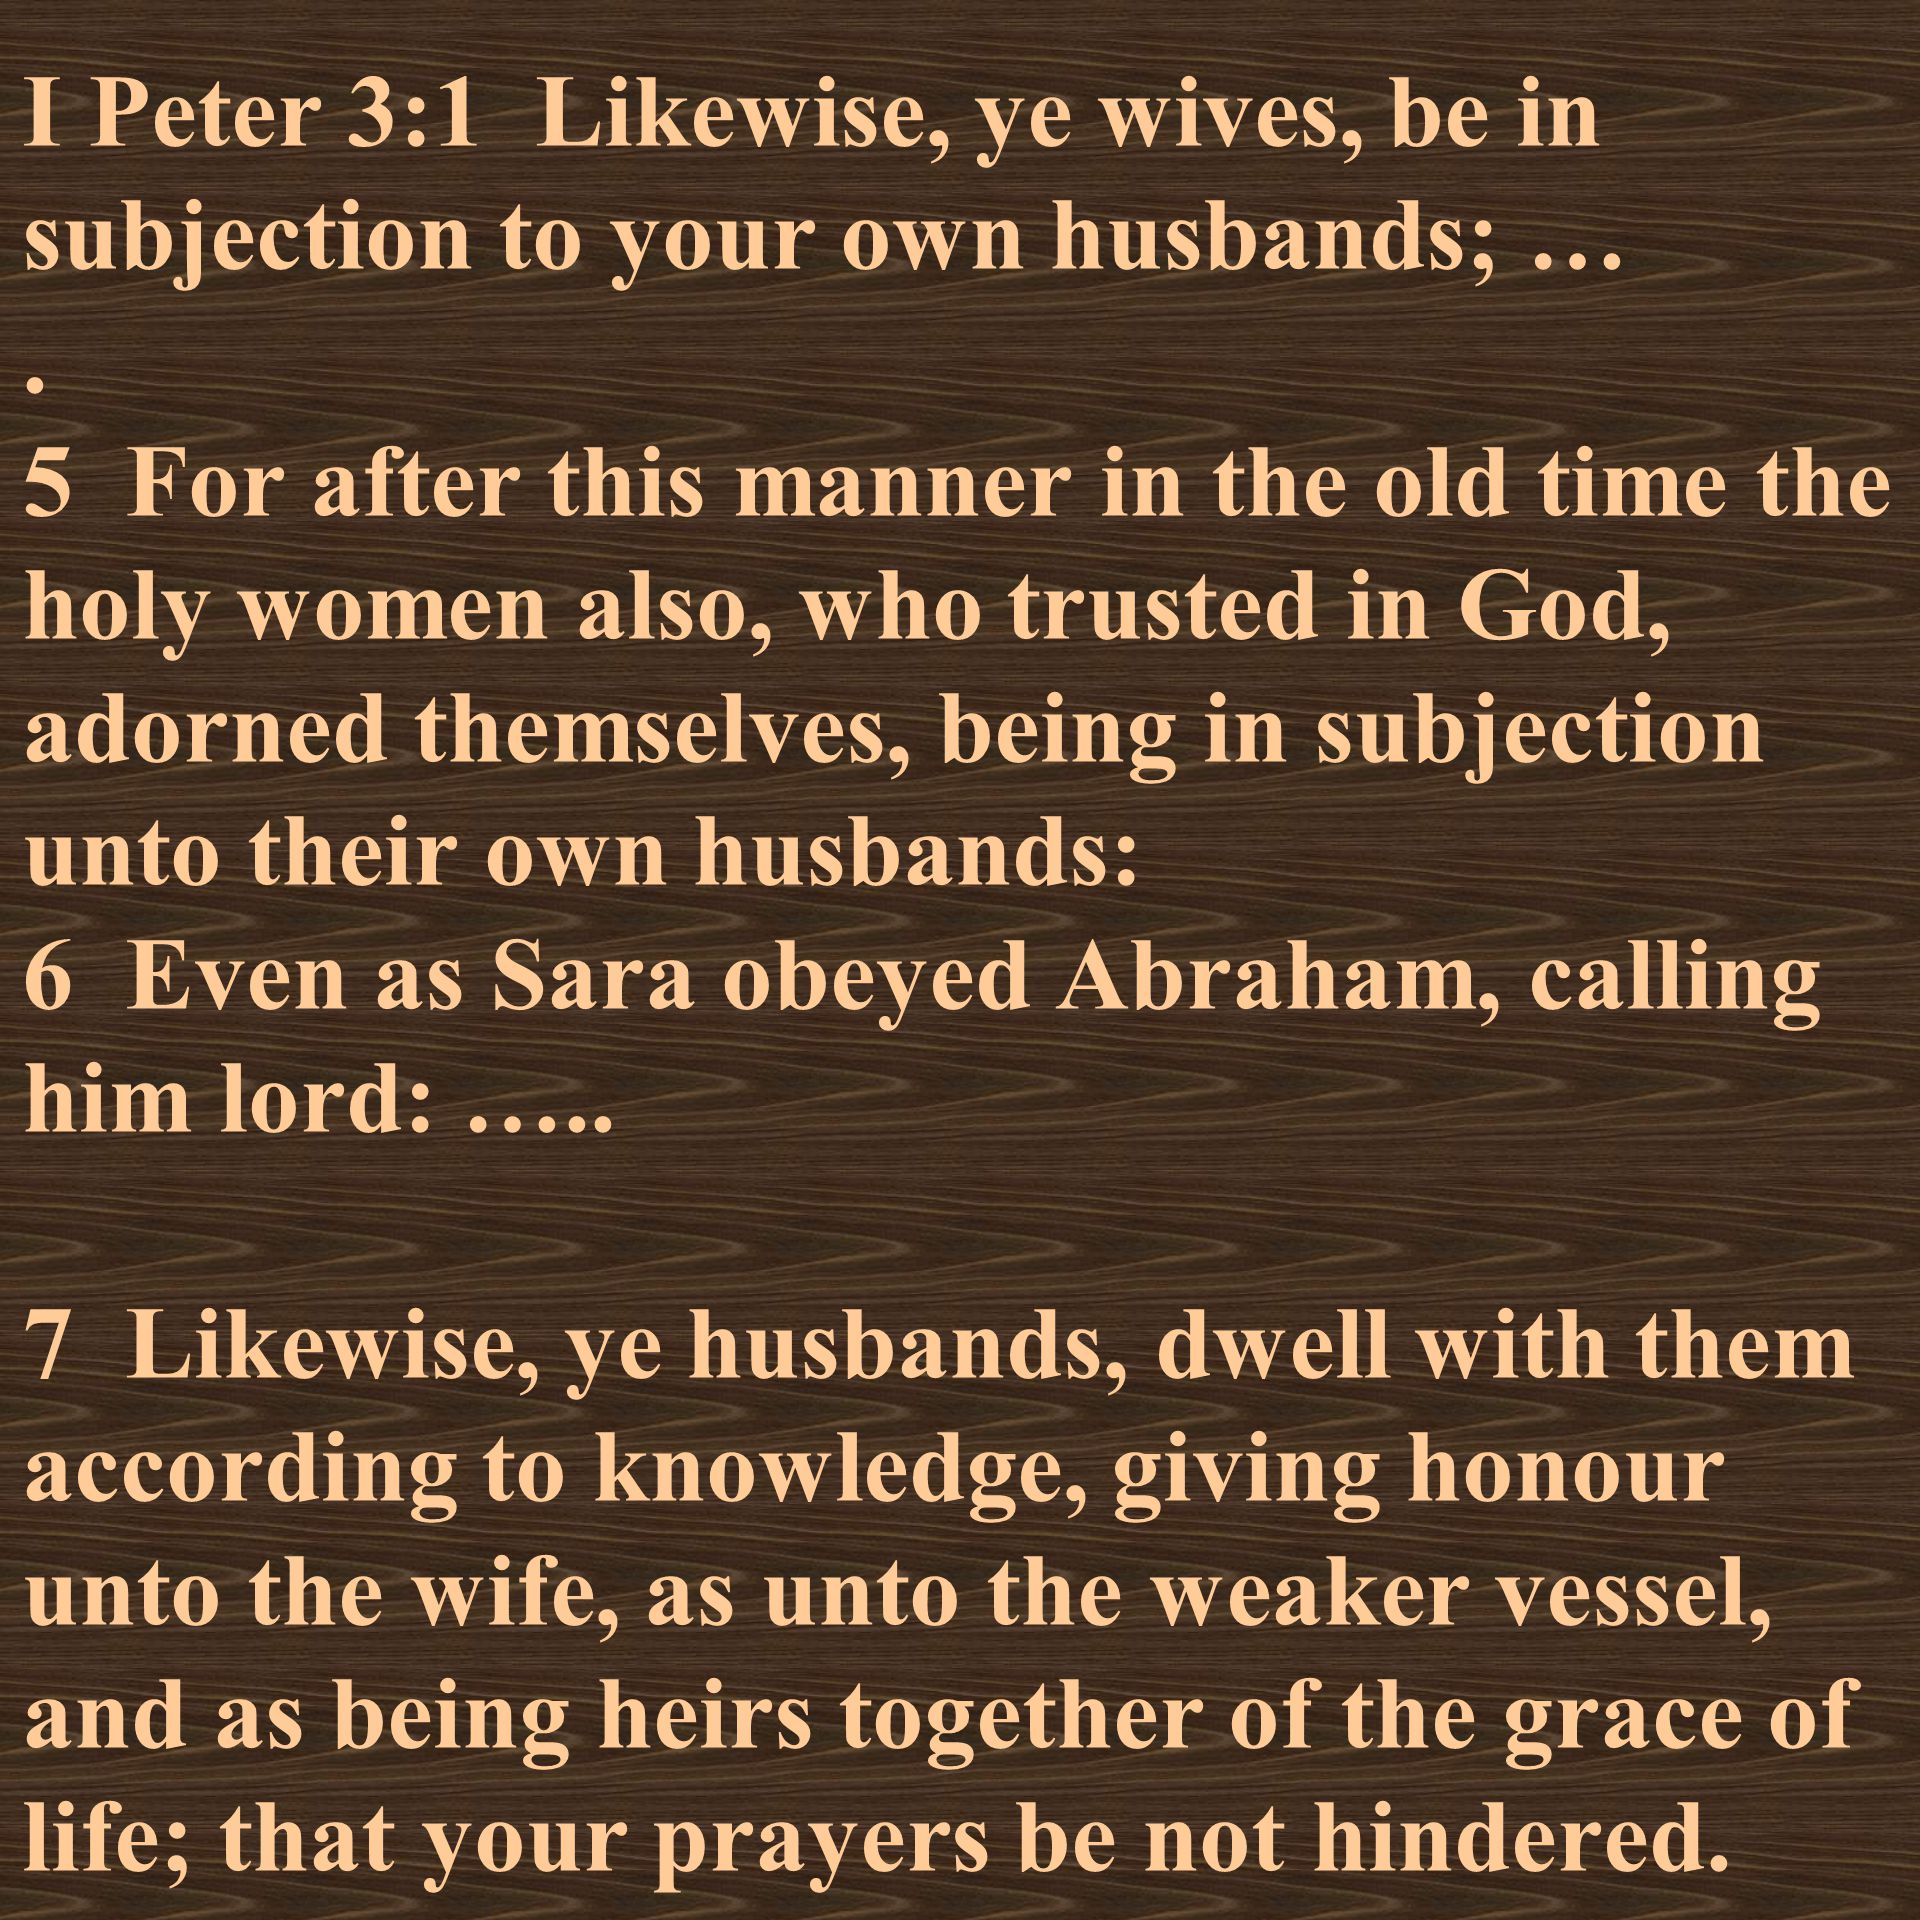 I Peter 3:1 Likewise, ye wives, be in subjection to your own husbands; ….